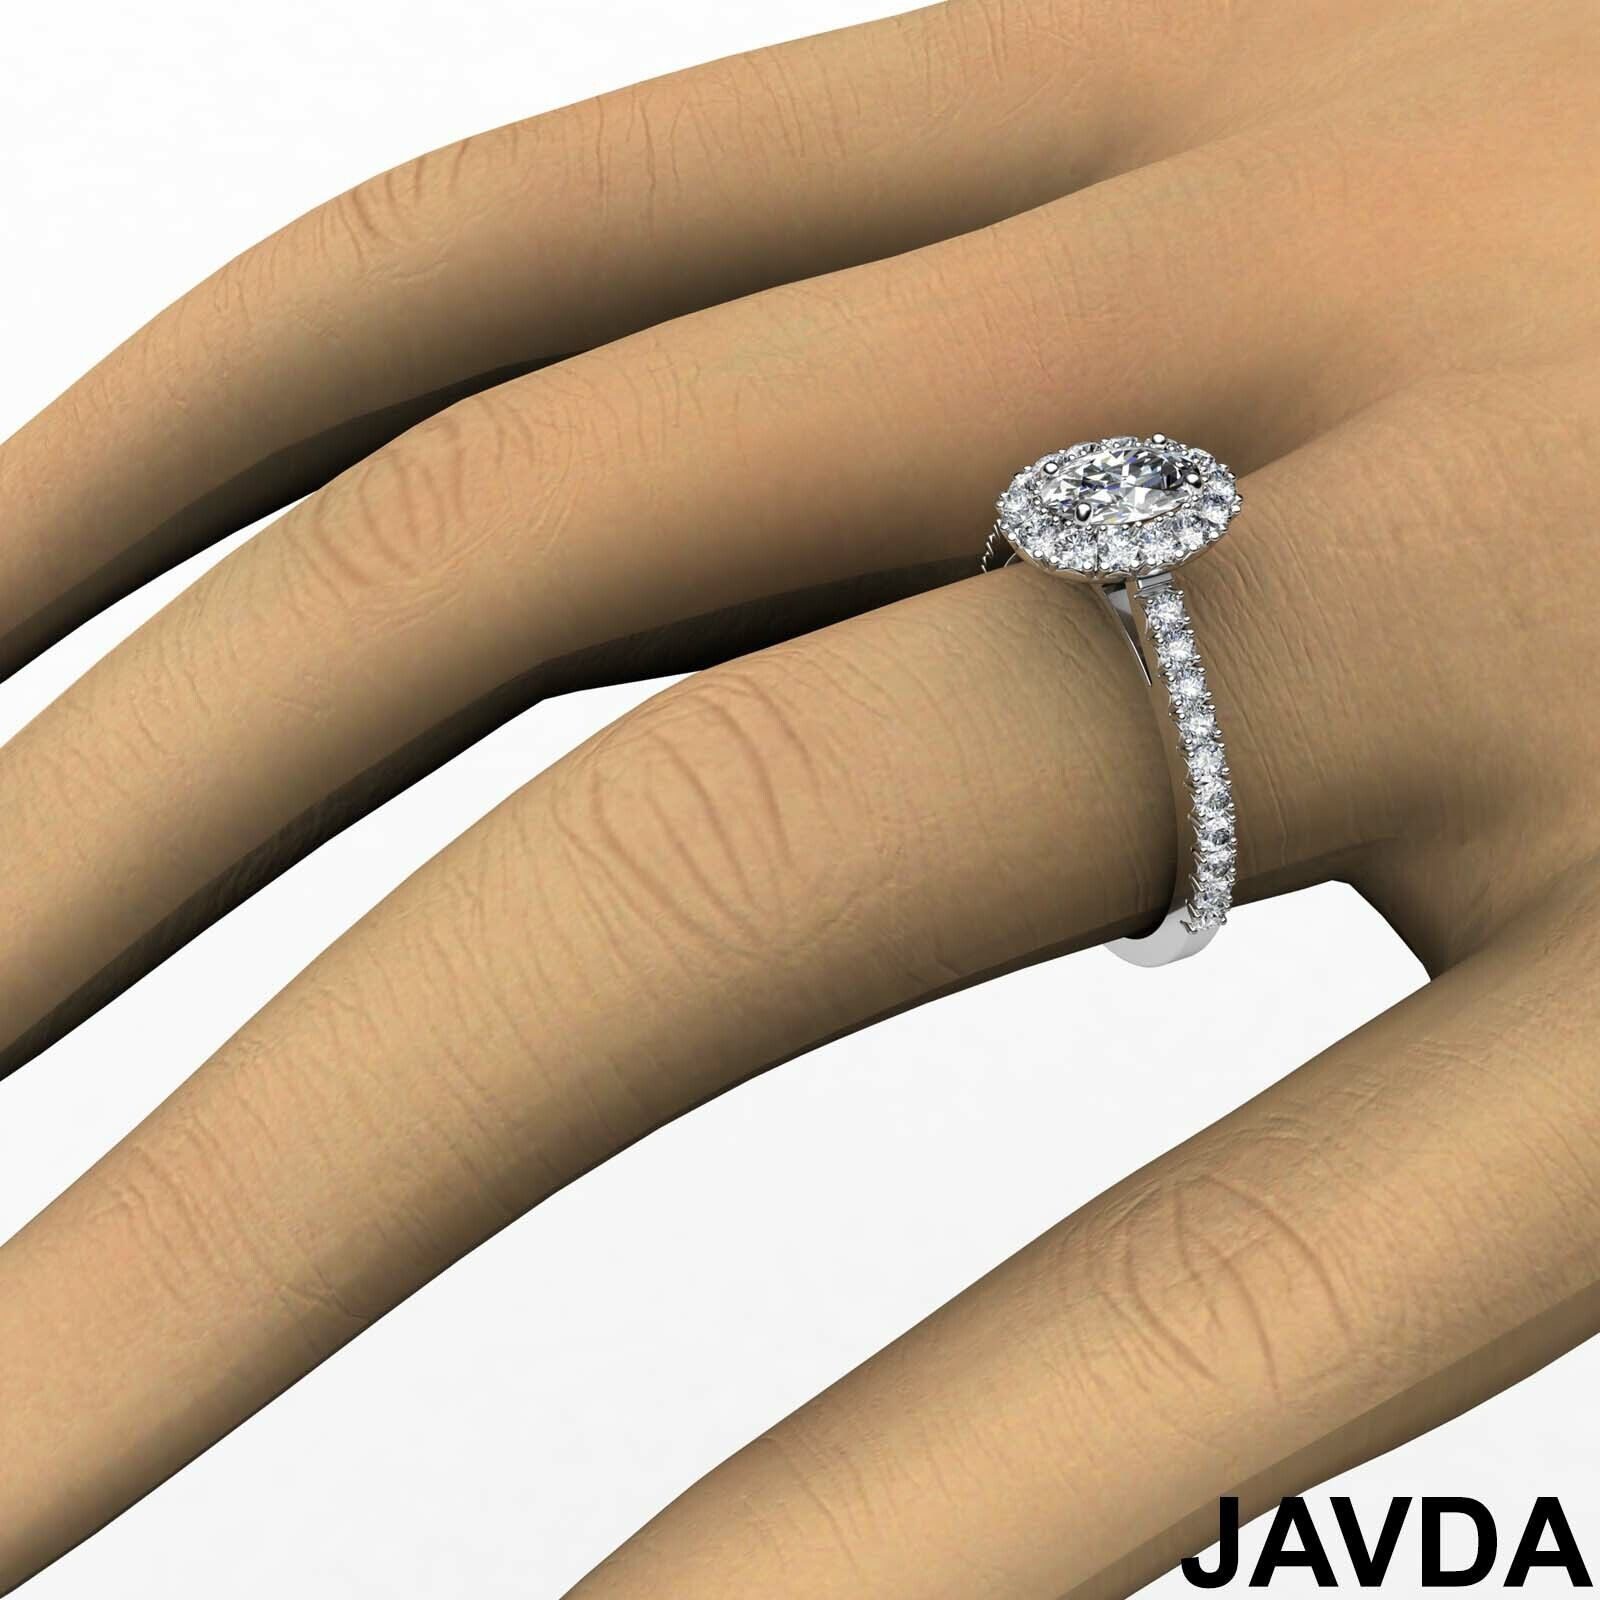 1.5ctw French V Cut Halo Pave Oval Diamond Engagement Ring GIA F-VVS2 White Gold 6